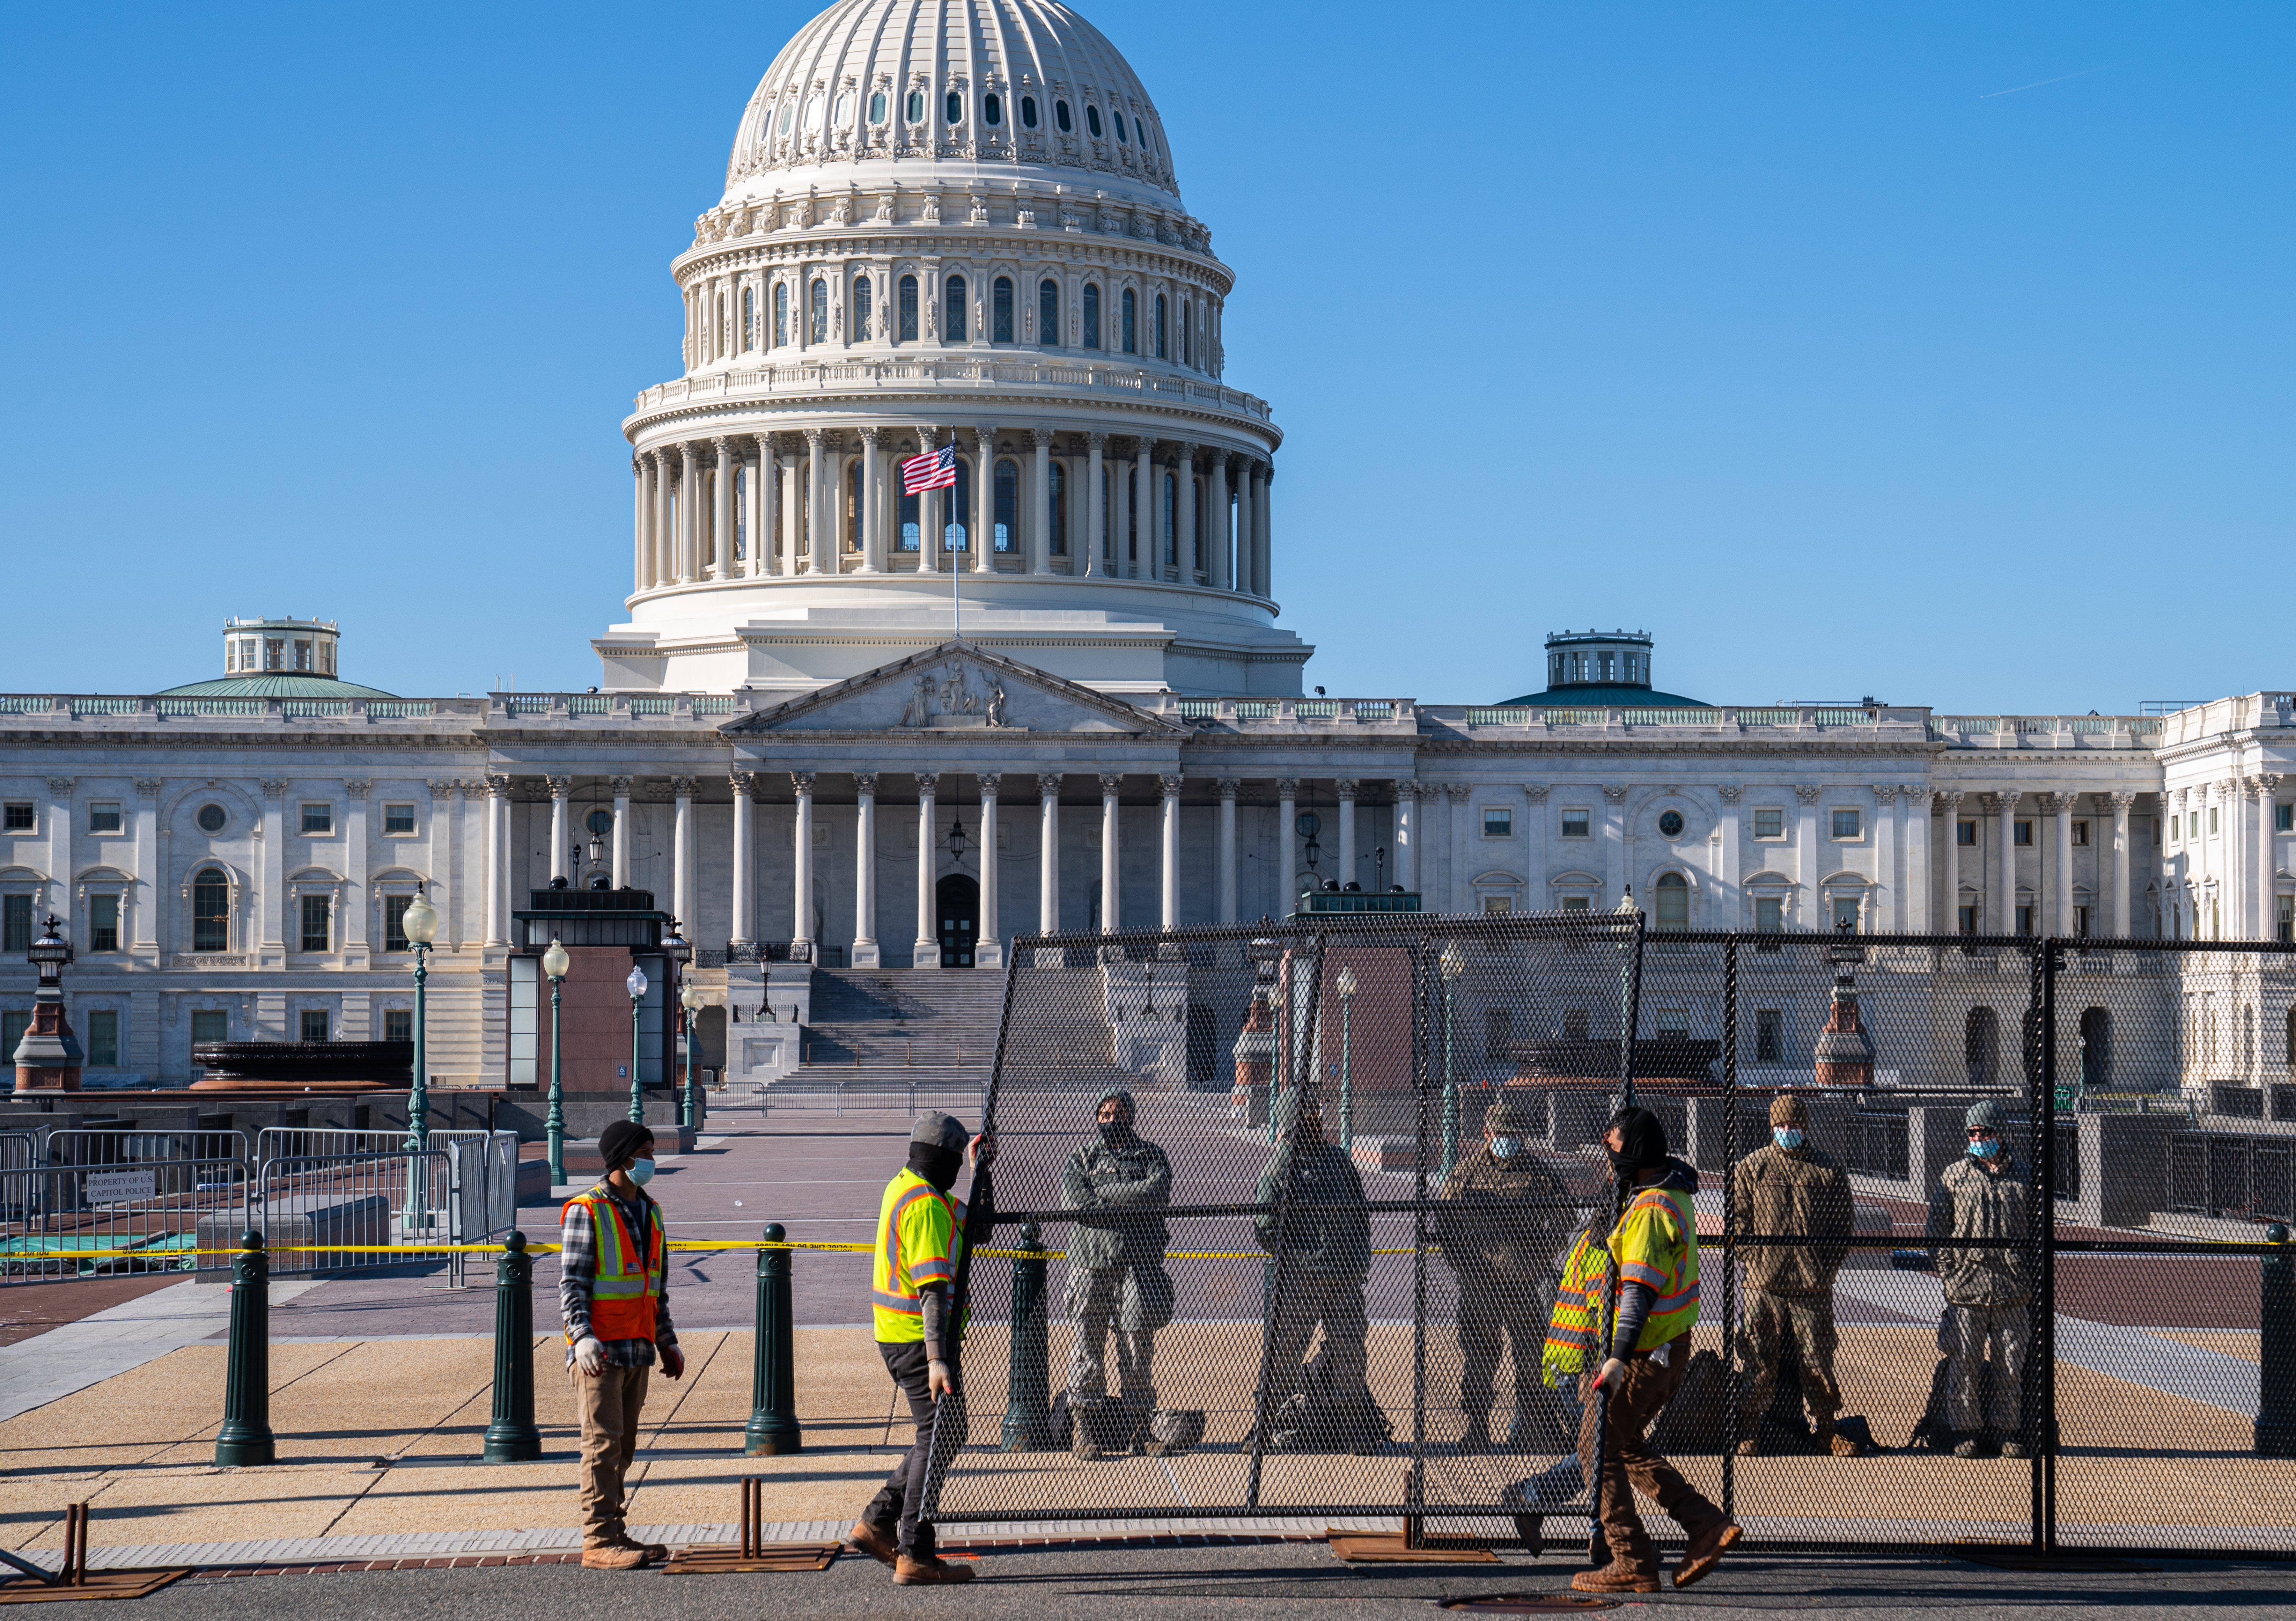 WASHINGTON, DC - JANUARY 07: National Guard members stand behind a construction crew as they assemble wire barricades surrounding the U.S. Capitol on January 7, 2021 in Washington, DC. A pro-Trump mob stormed and desecrated the building the day before as Congress held a joint session to ratify President-elect Joe Biden's 306-232 Electoral College win over President Donald Trump. (Photo by Robert Nickelsberg/Getty Images)